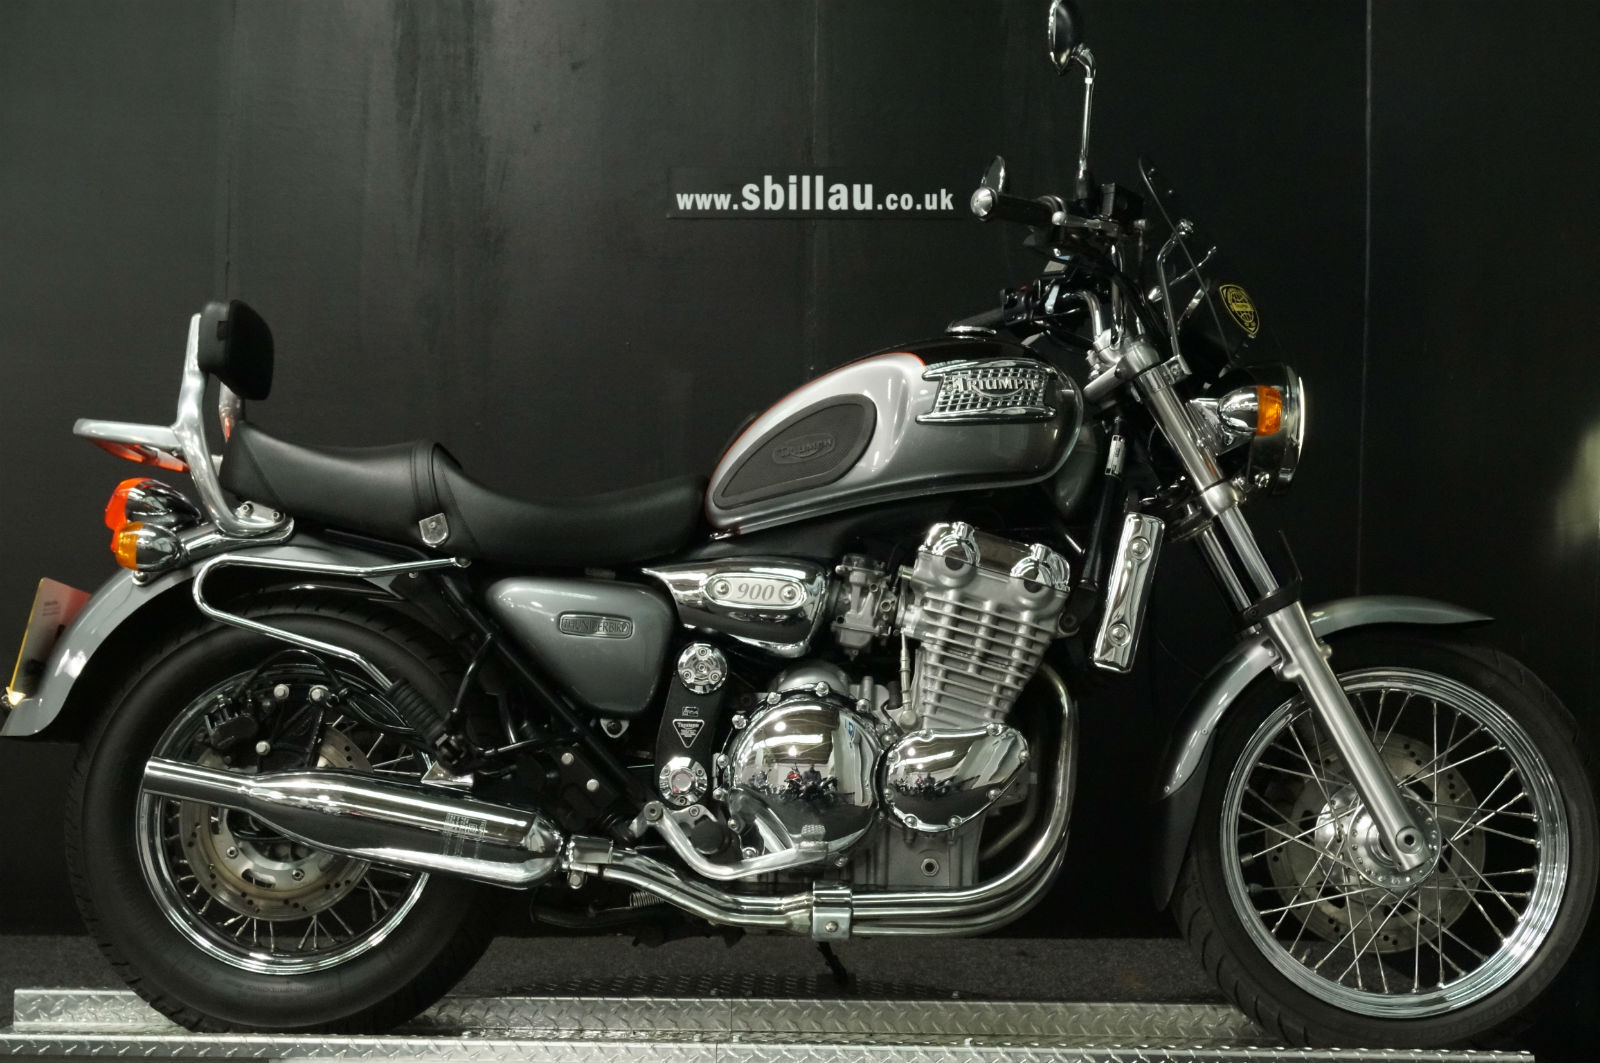 02 02 triumph thunderbird 900 triple retro cruiser with extras 26 000 miles. Black Bedroom Furniture Sets. Home Design Ideas